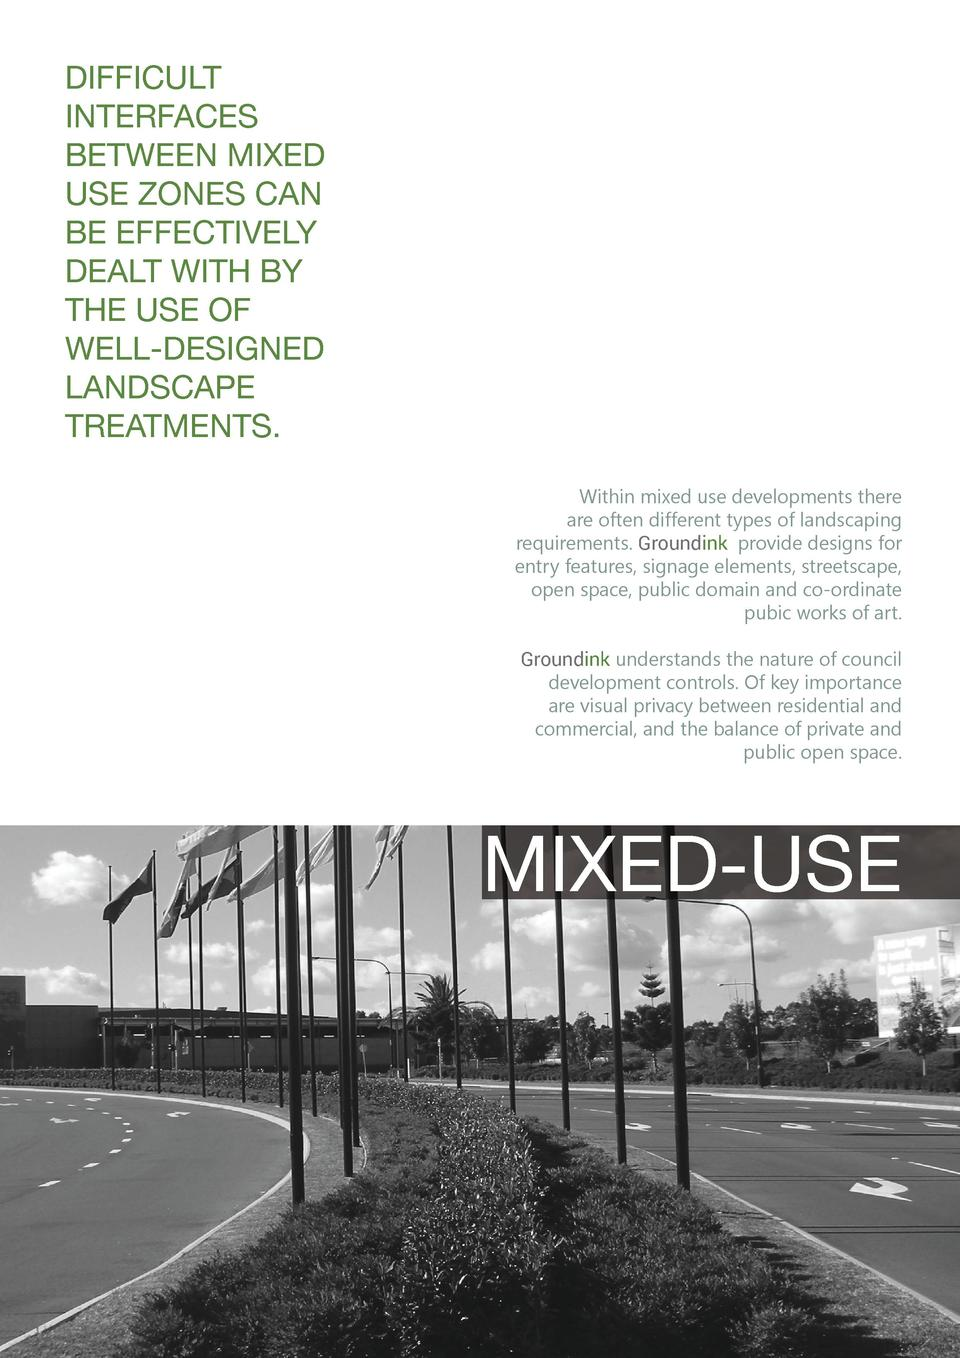 DIFFICULT INTERFACES BETWEEN MIXED USE ZONES CAN BE EFFECTIVELY DEALT WITH BY THE USE OF WELL-DESIGNED LANDSCAPE TREATMENT...